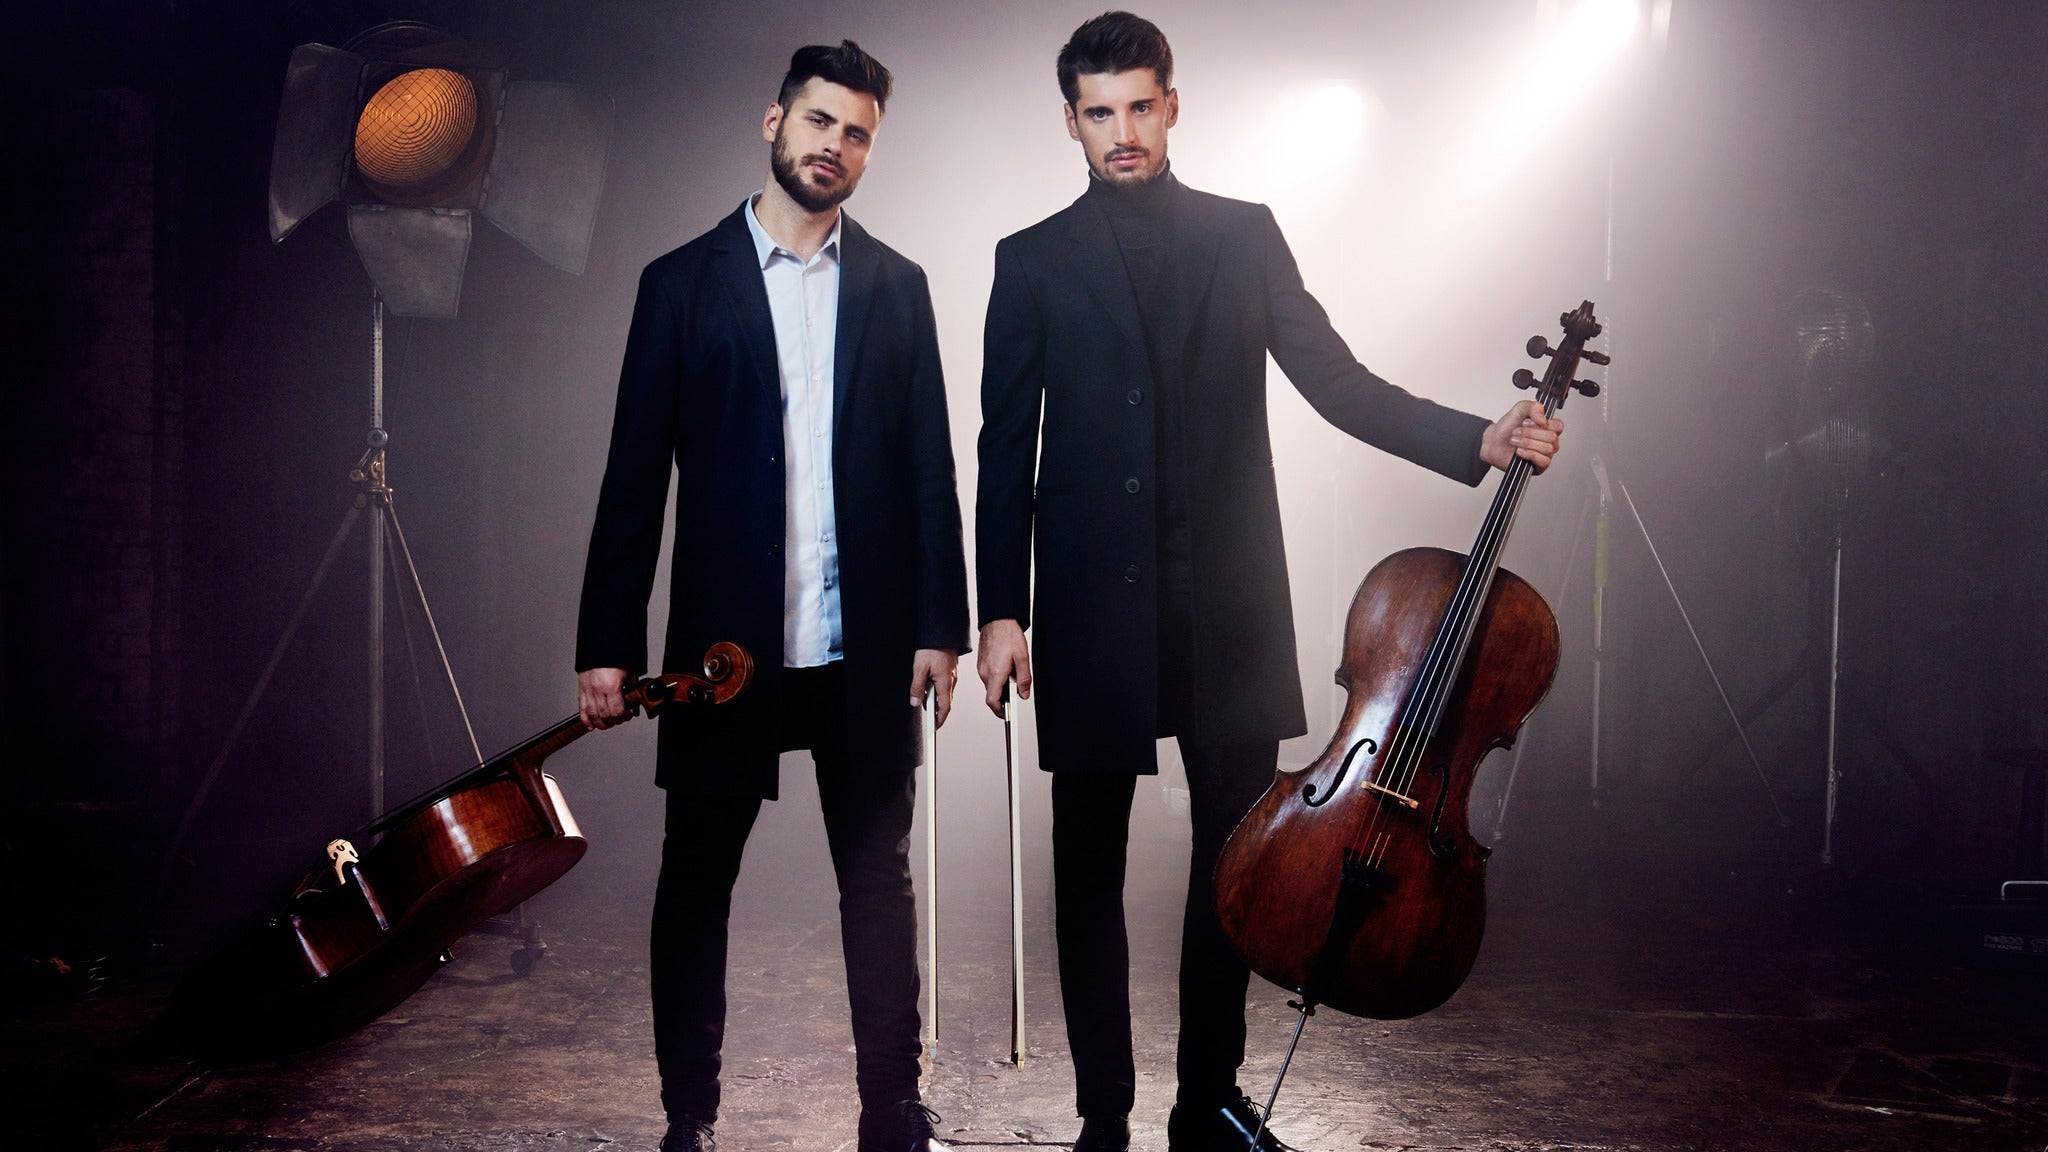 2CELLOS: The Score Tour at Chastain Park Amphitheatre